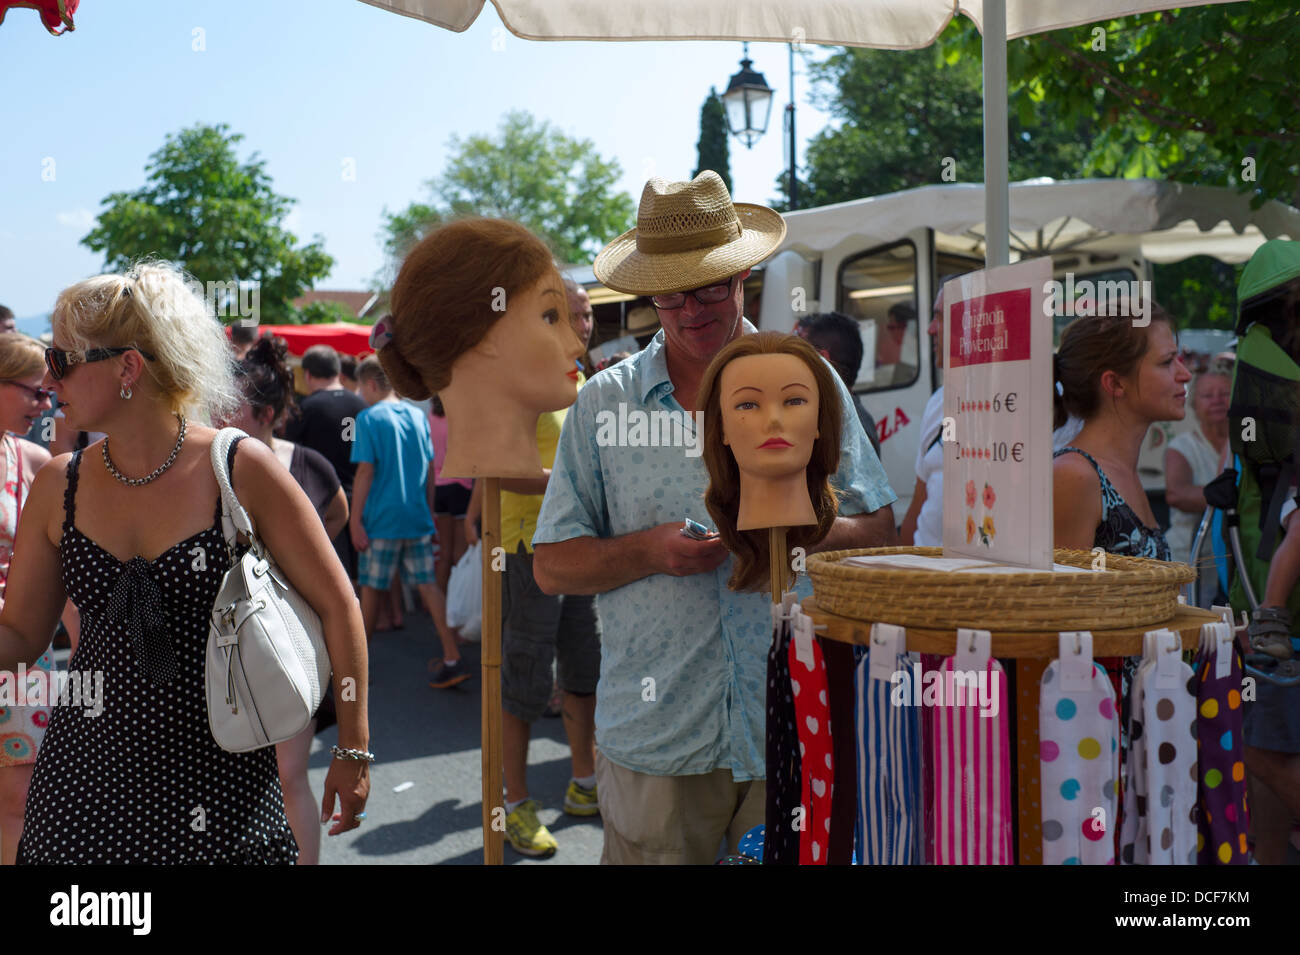 A stall holder selling Accessories  for the Chignon hairstyle - Stock Image